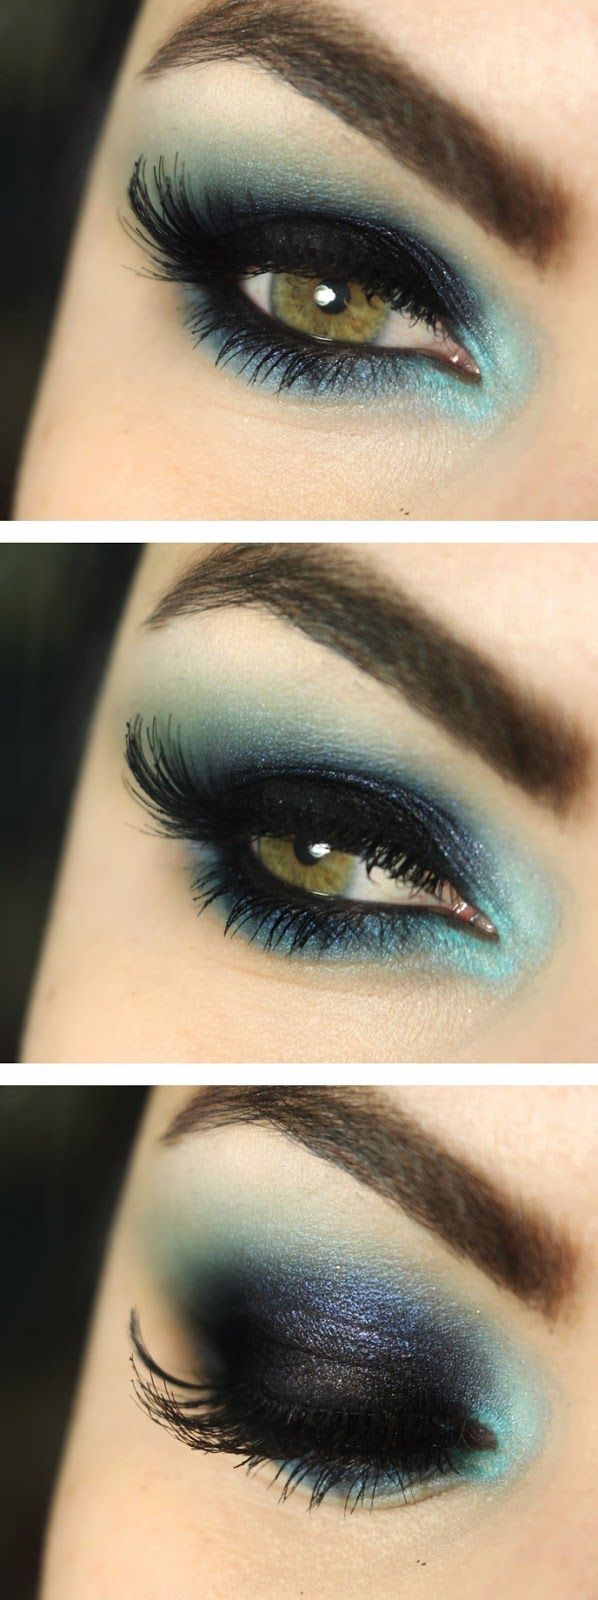 Blue Makeup Inspired By Katy Perry Tutorials / Best LoLus